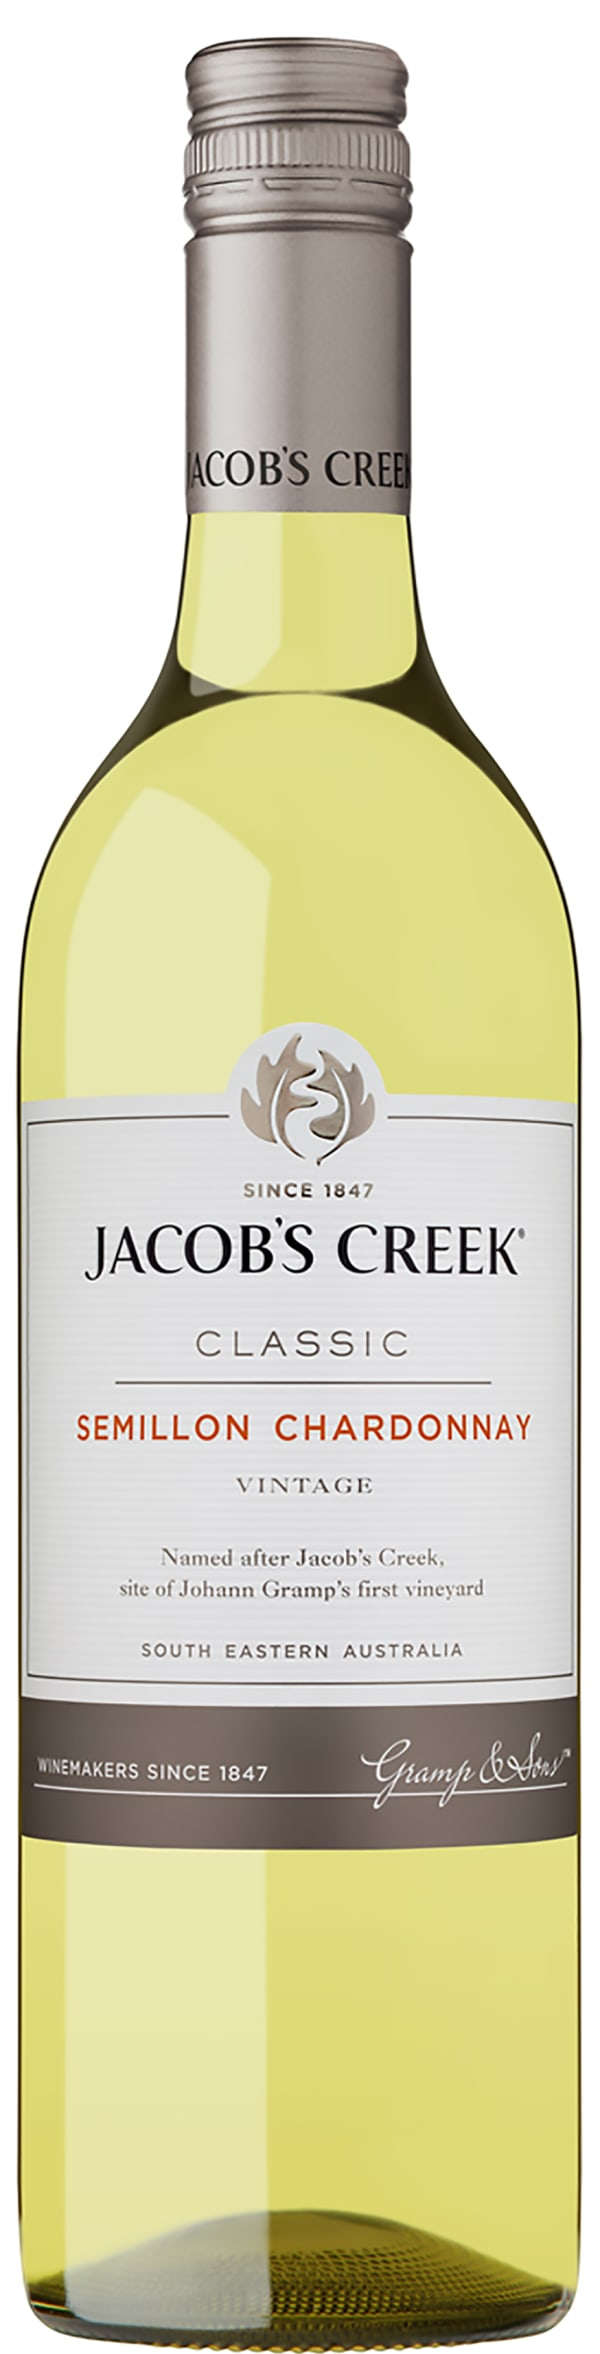 Jacob's Creek Semillon Chardonnay 2018